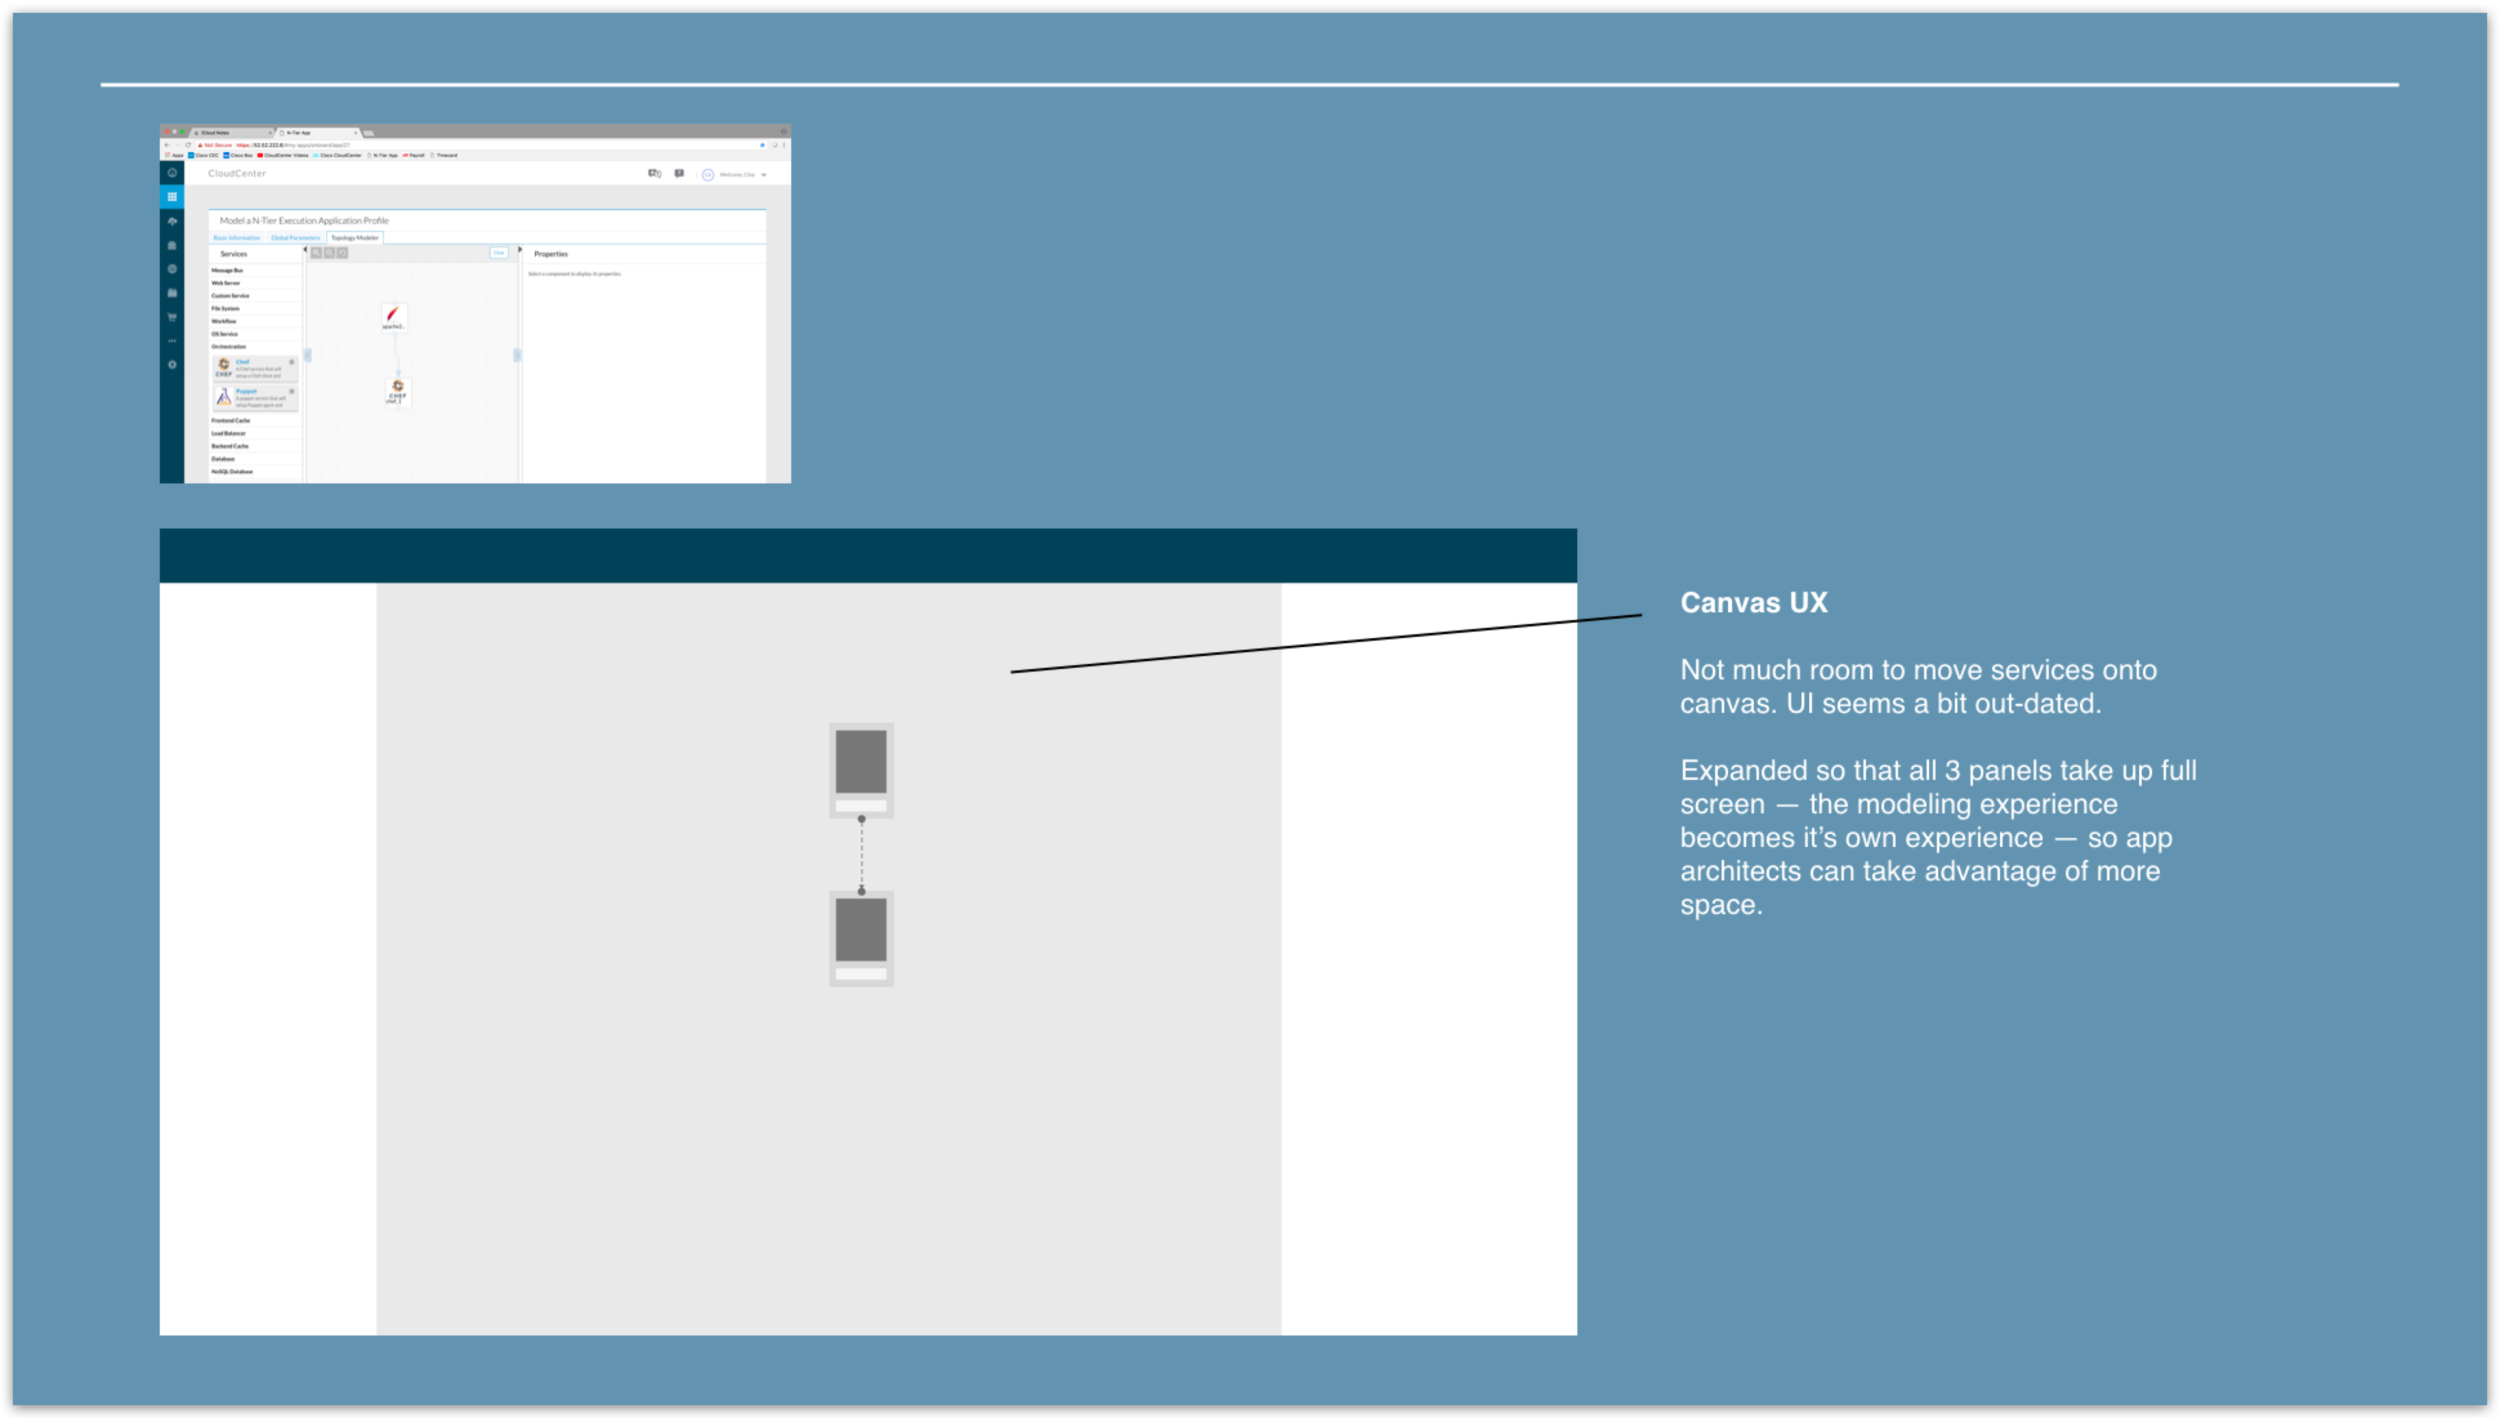 There was not much room to move services onto canvas. The 3 panel layout could be expanded to take the full screen, allowing app architects to take advantage of more space.